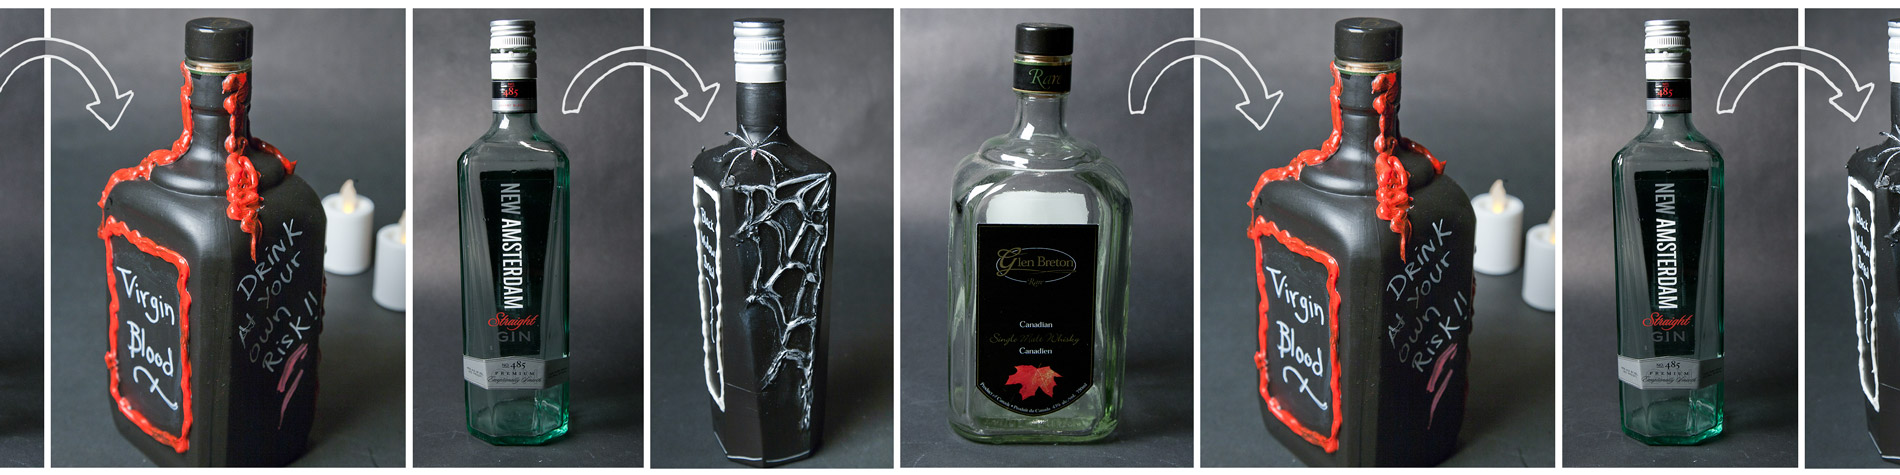 DIY Gothic Bottle Decorations